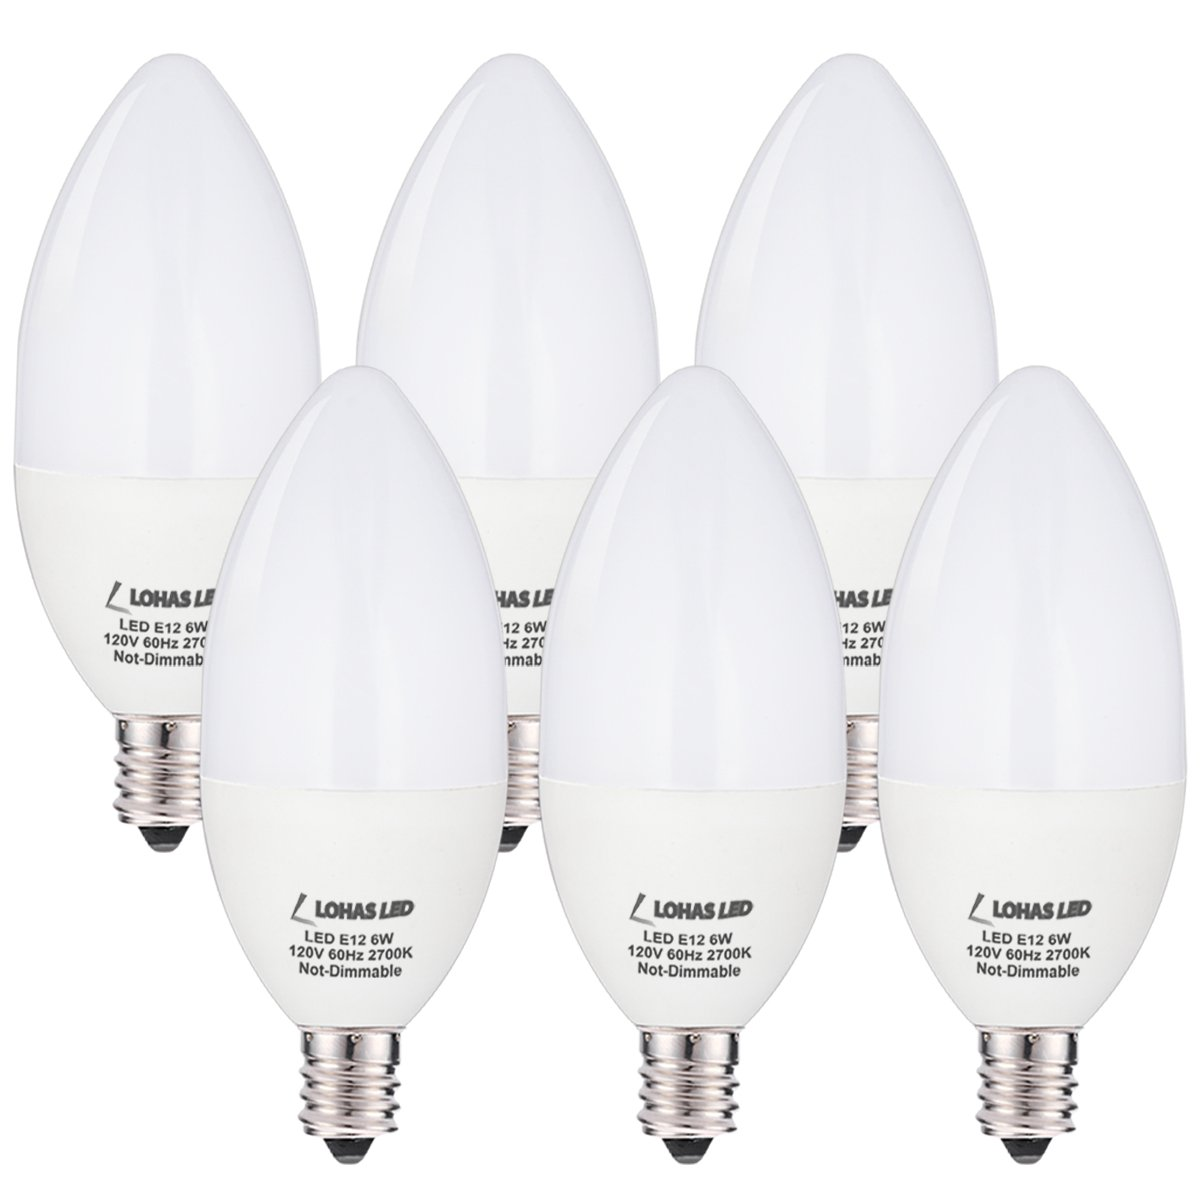 Candelabra Led Bulb: LOHAS Candelabra Bulb, 60 Watt LED Light Bulbs Equivalent